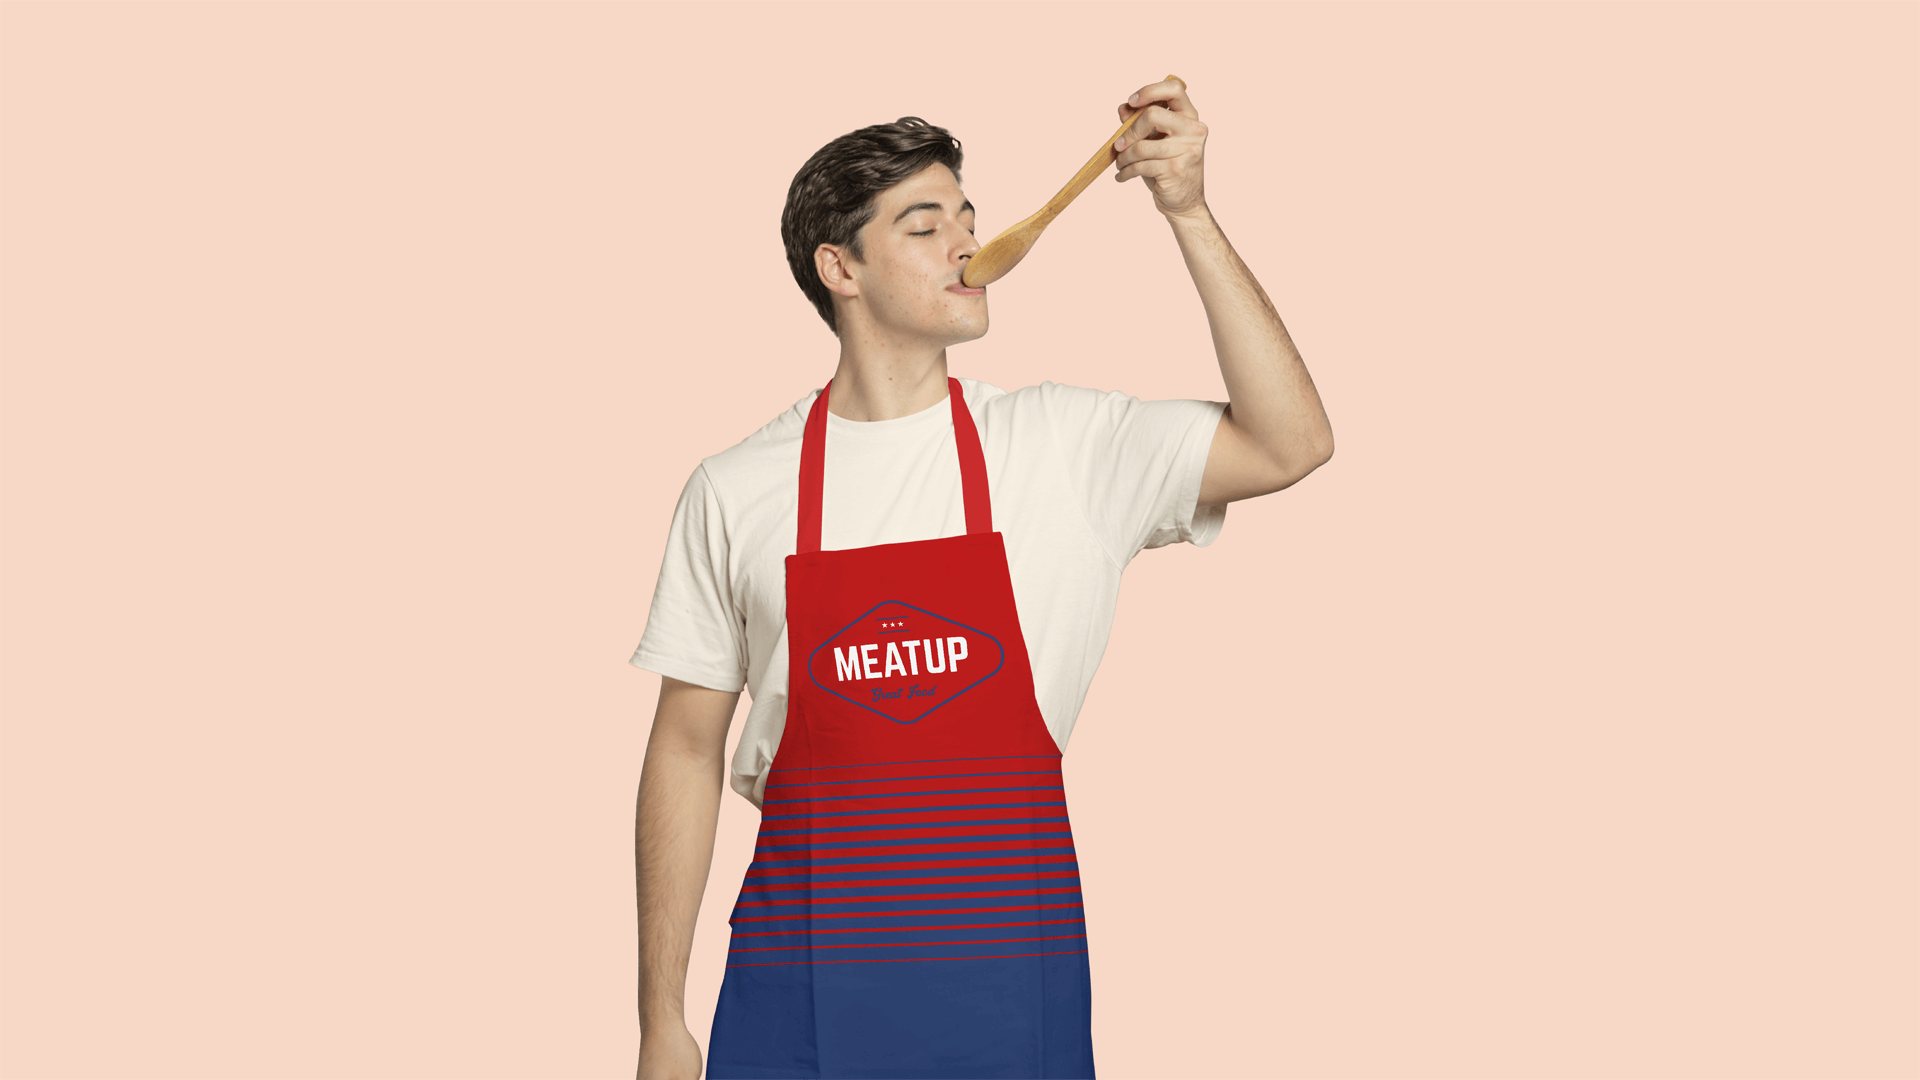 Meatup uniform